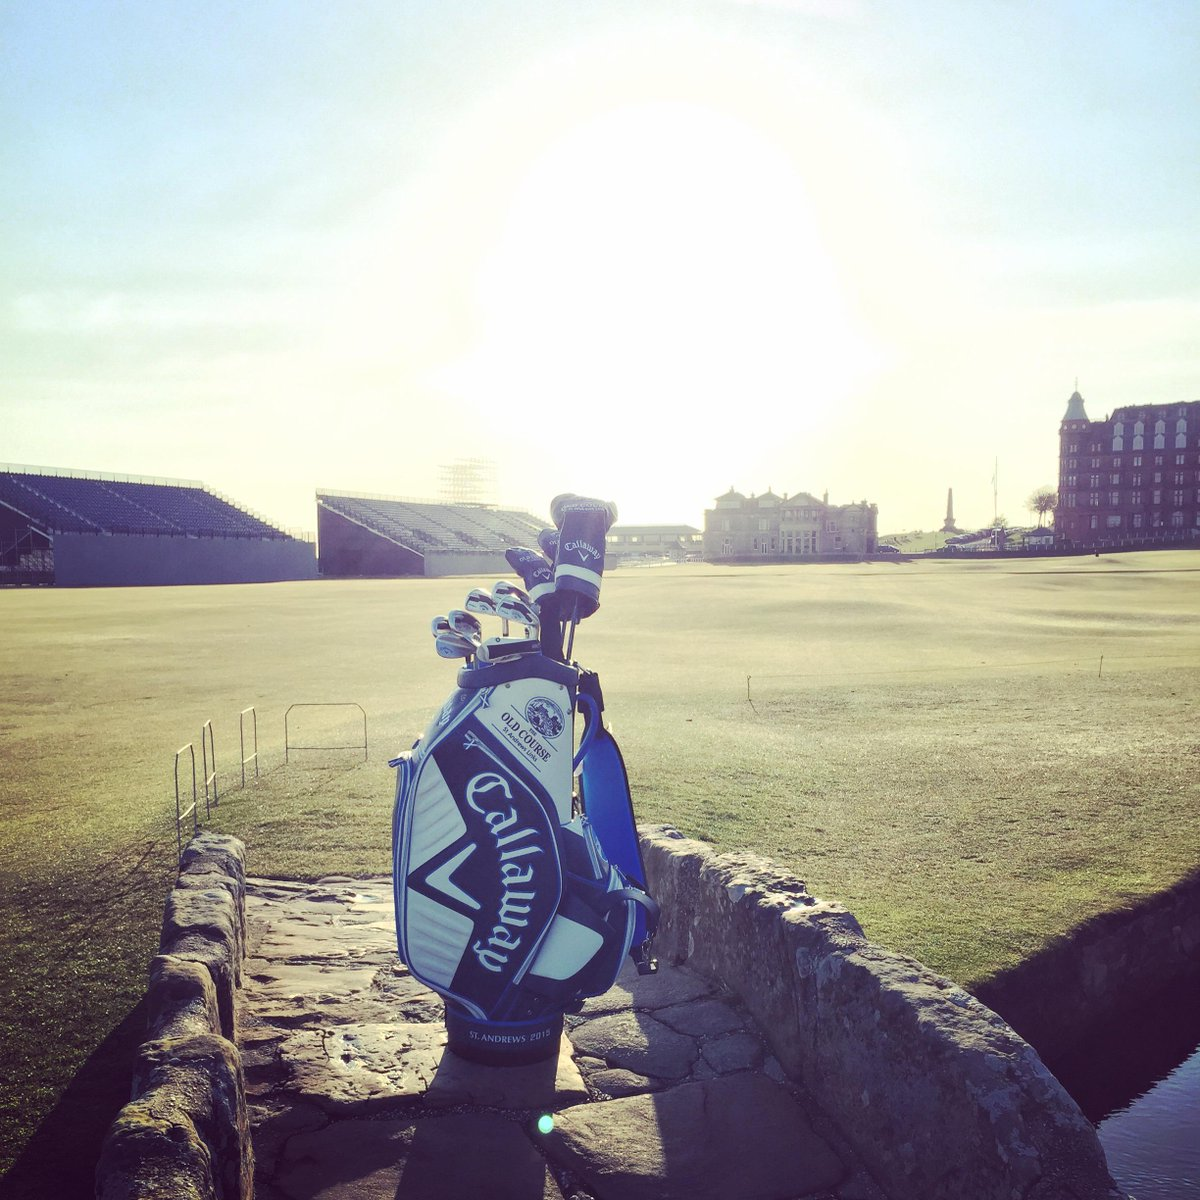 Just RETWEET & FOLLOW for your chance to win this bag, used by #TeamCallaway at the #TheOpen at #TheHomeOfGolf http://t.co/3Yv367NFji